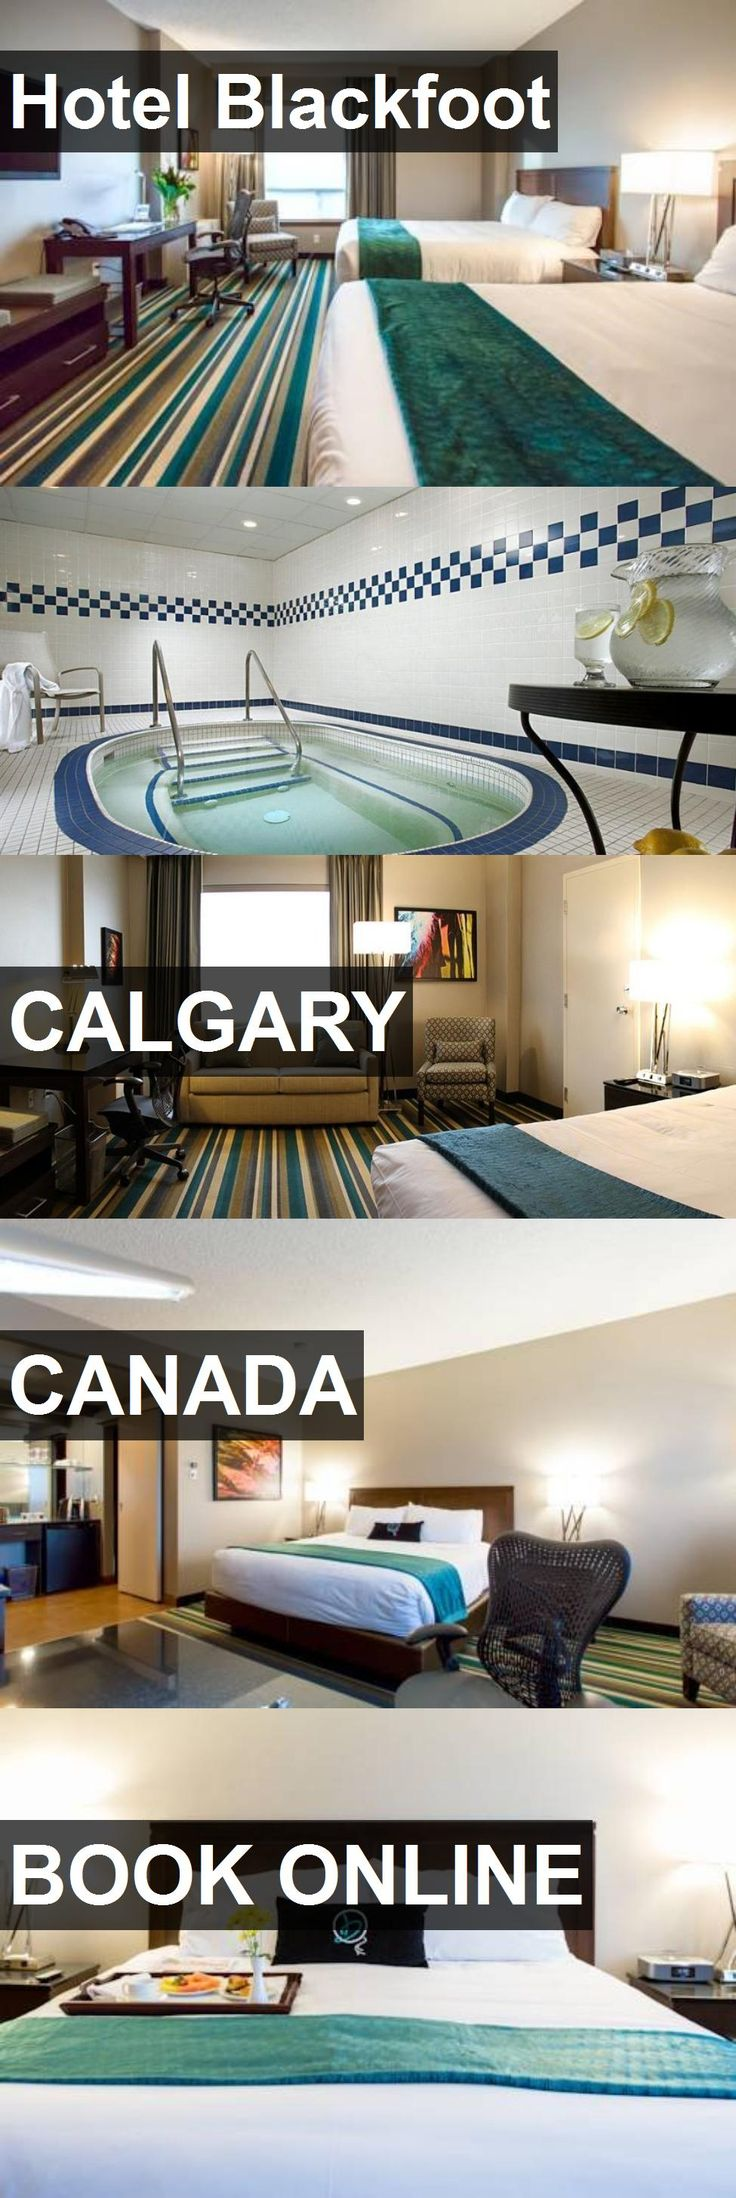 Hotel Blackfoot in Calgary, Canada. For more information, photos, reviews and best prices please follow the link. #Canada #Calgary #travel #vacation #hotel